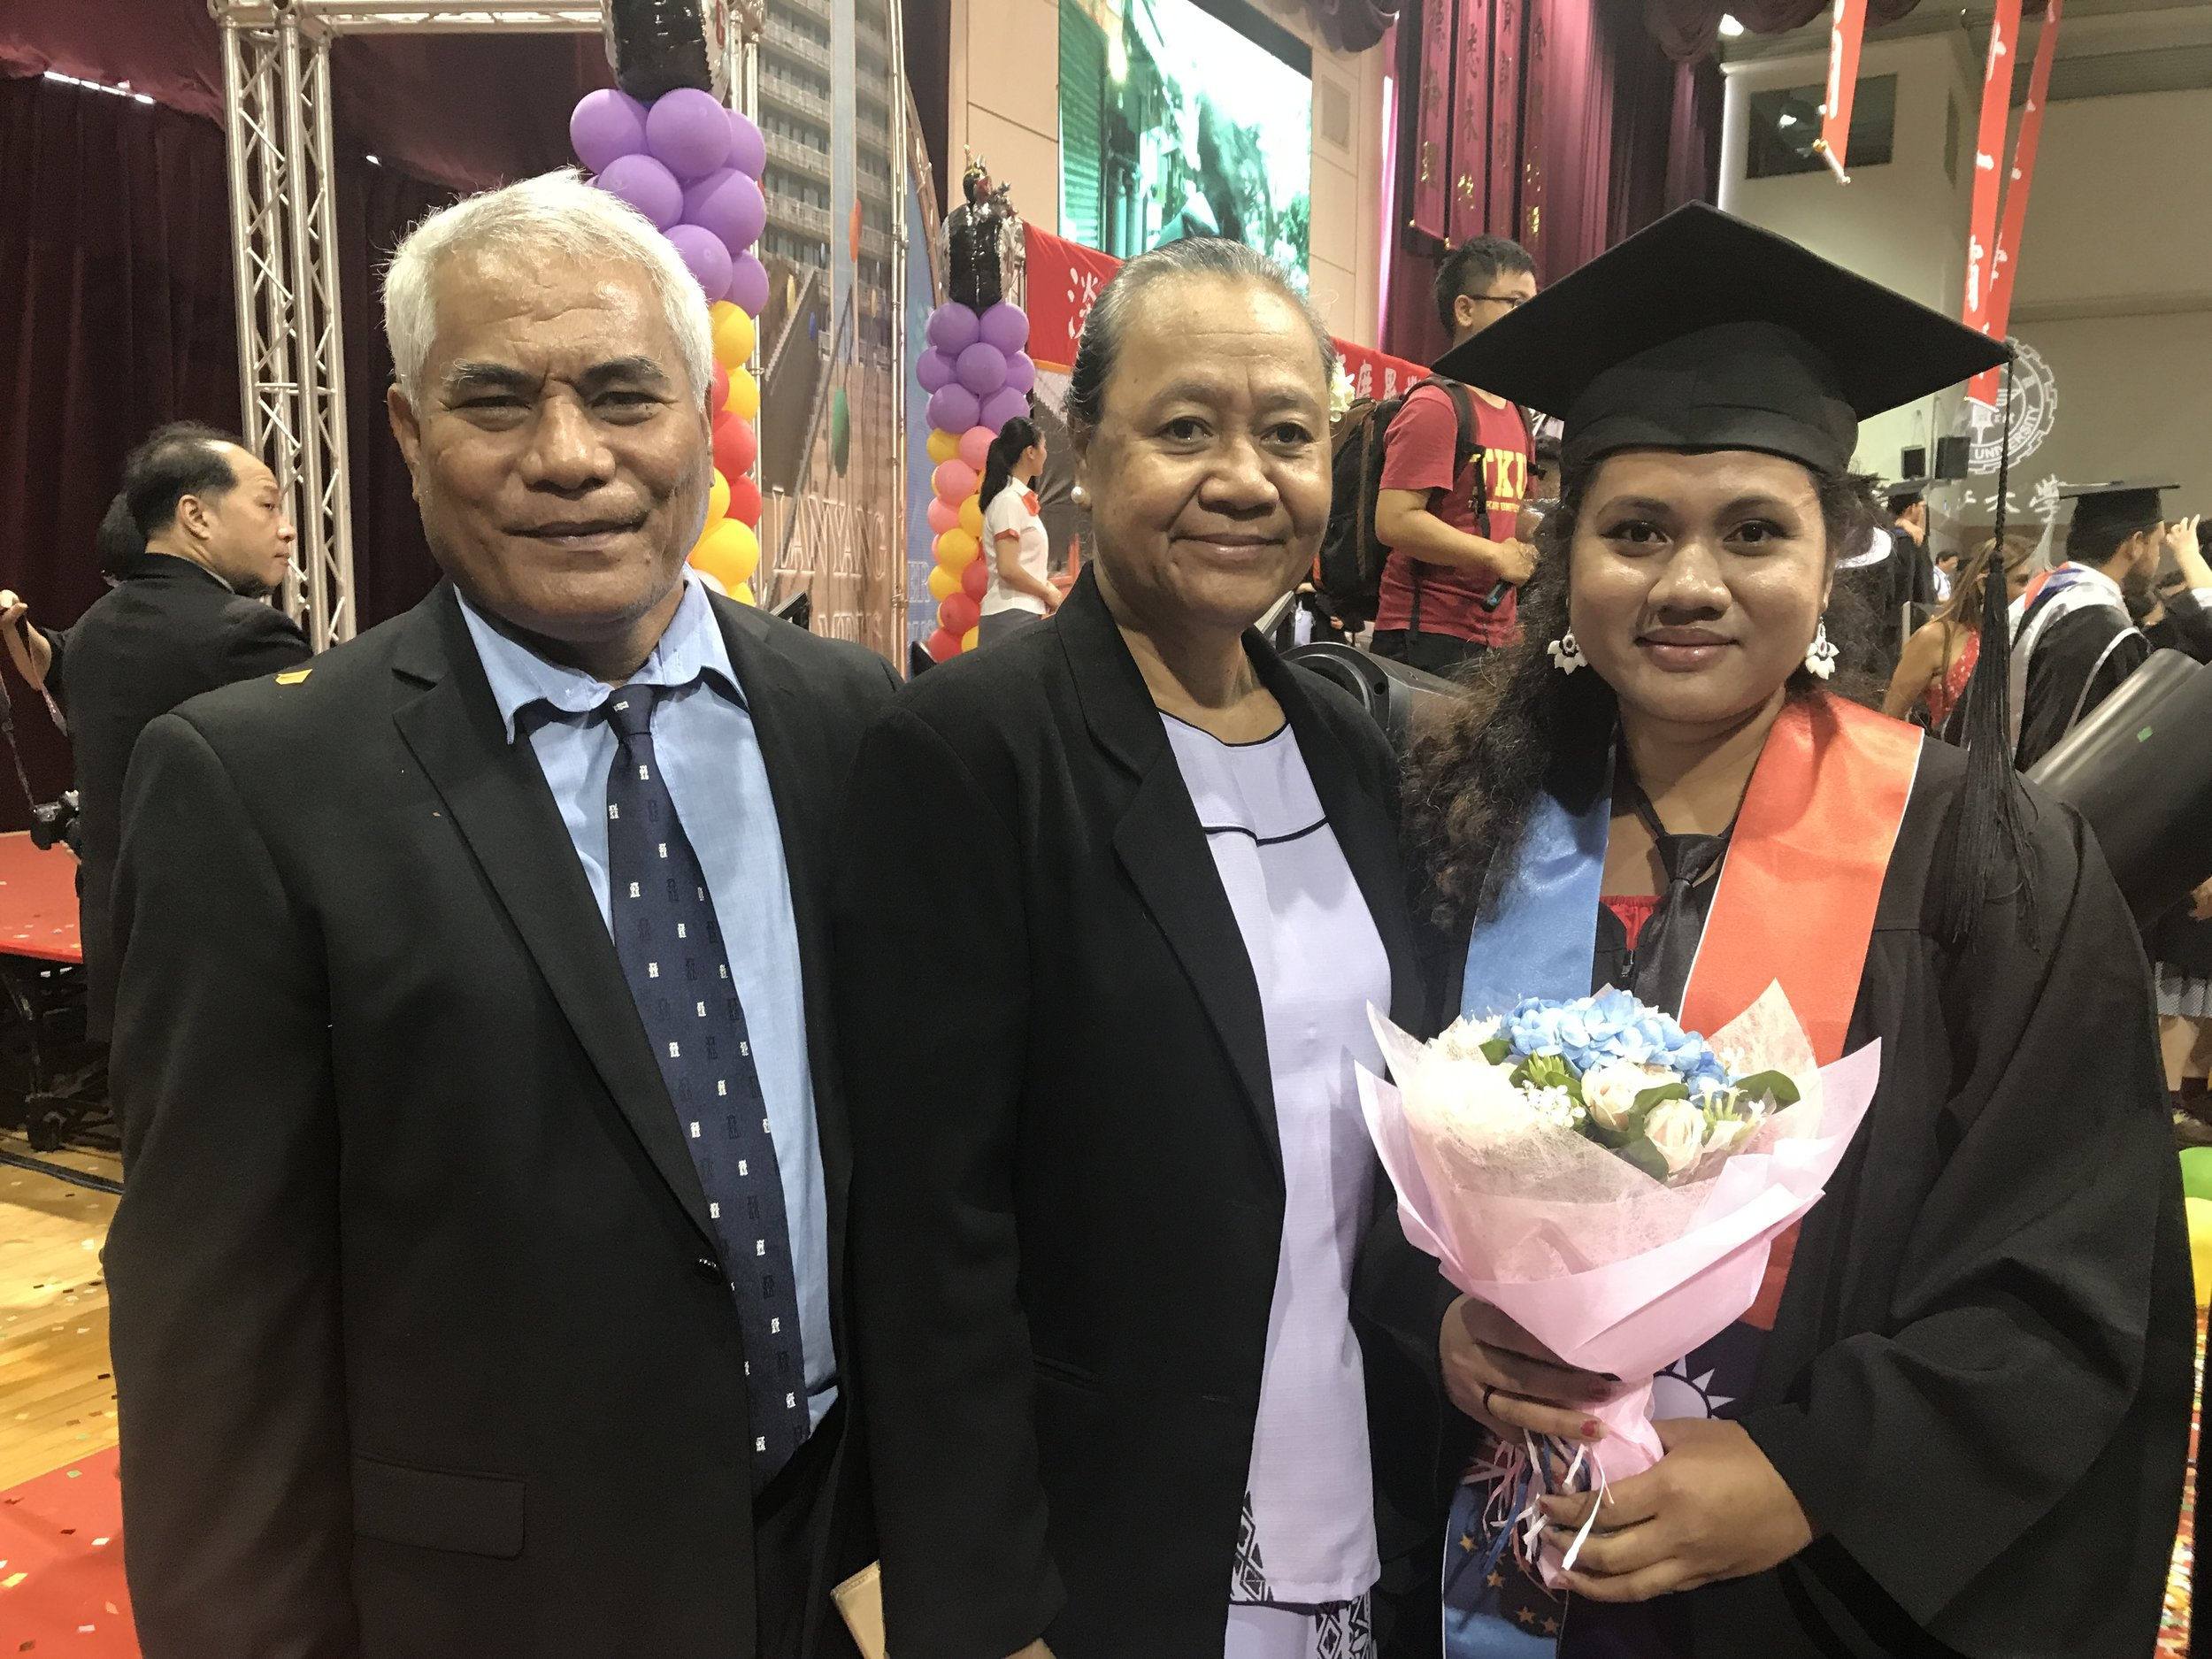 H.E. Ambassador Teatu and Mr. Siaeki Teatu with our graduate Ms. Akape Seu